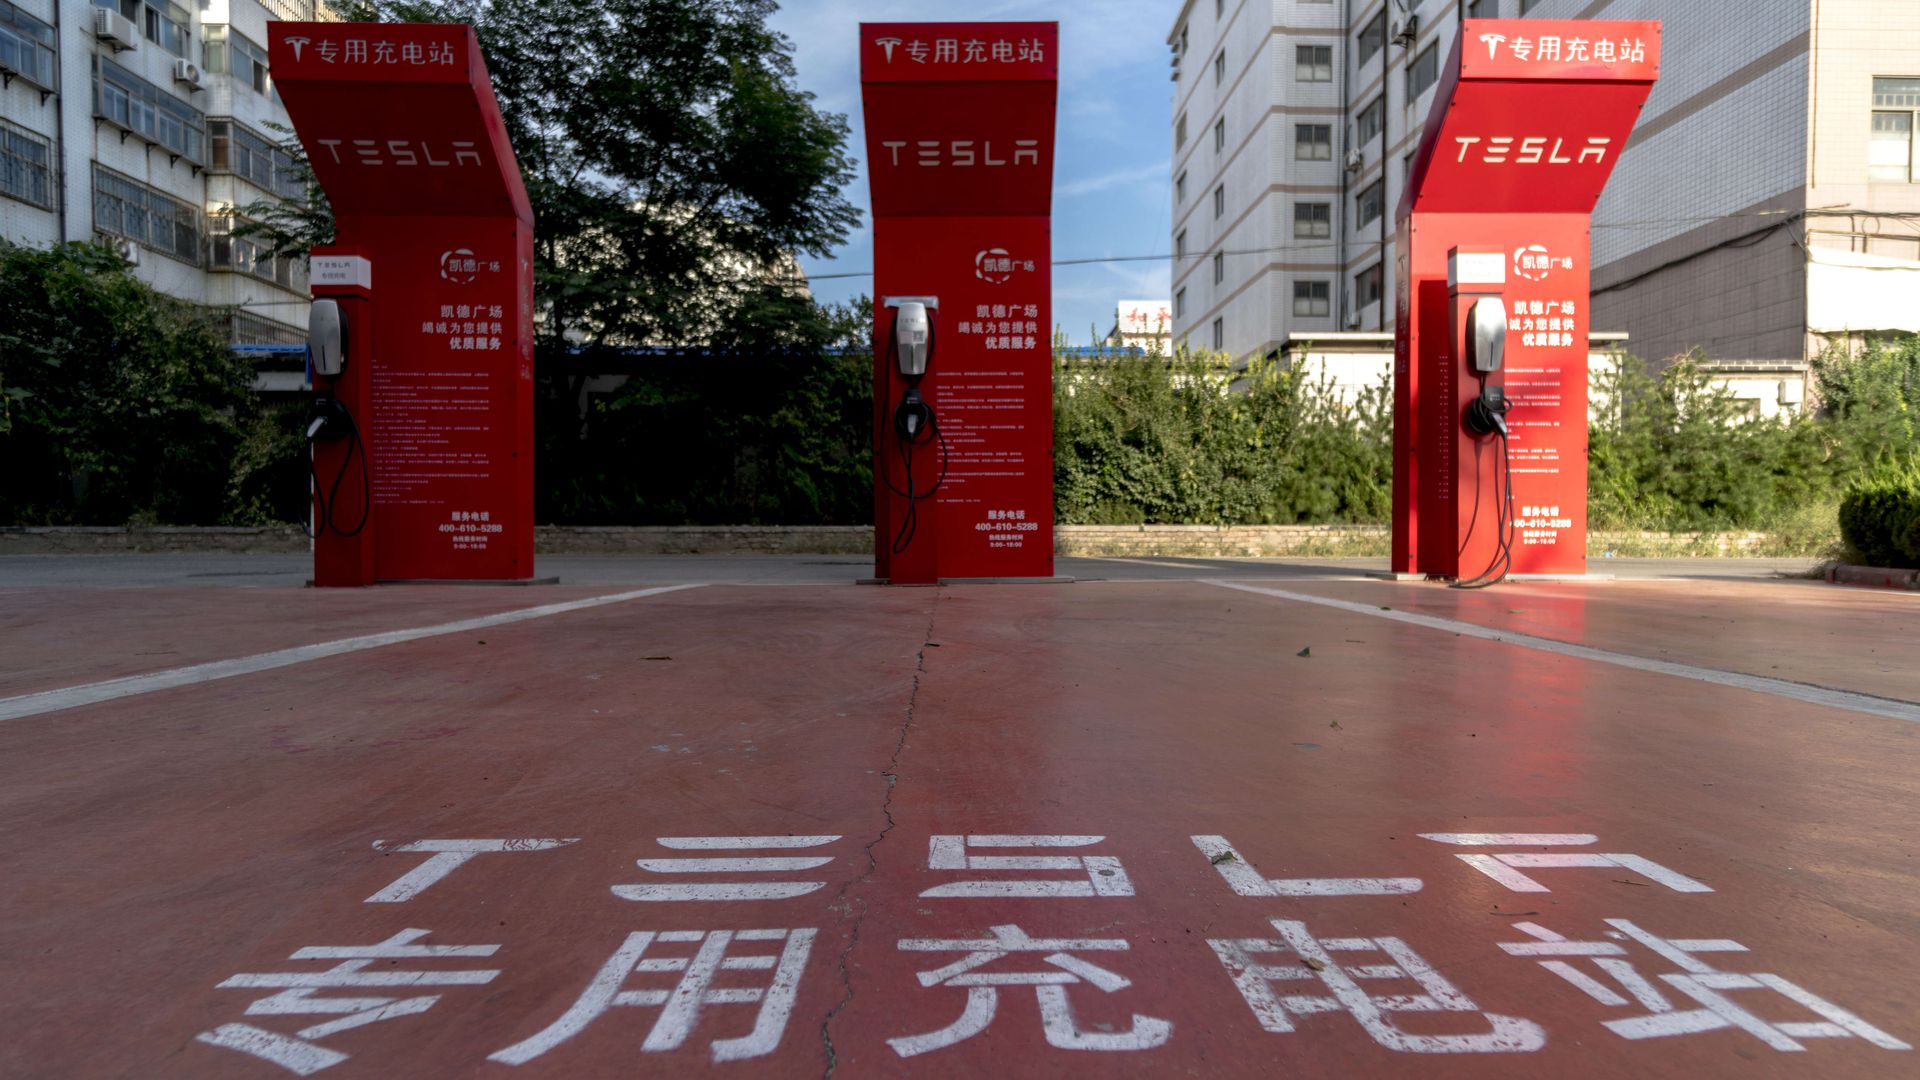 Tesla charging stations in China